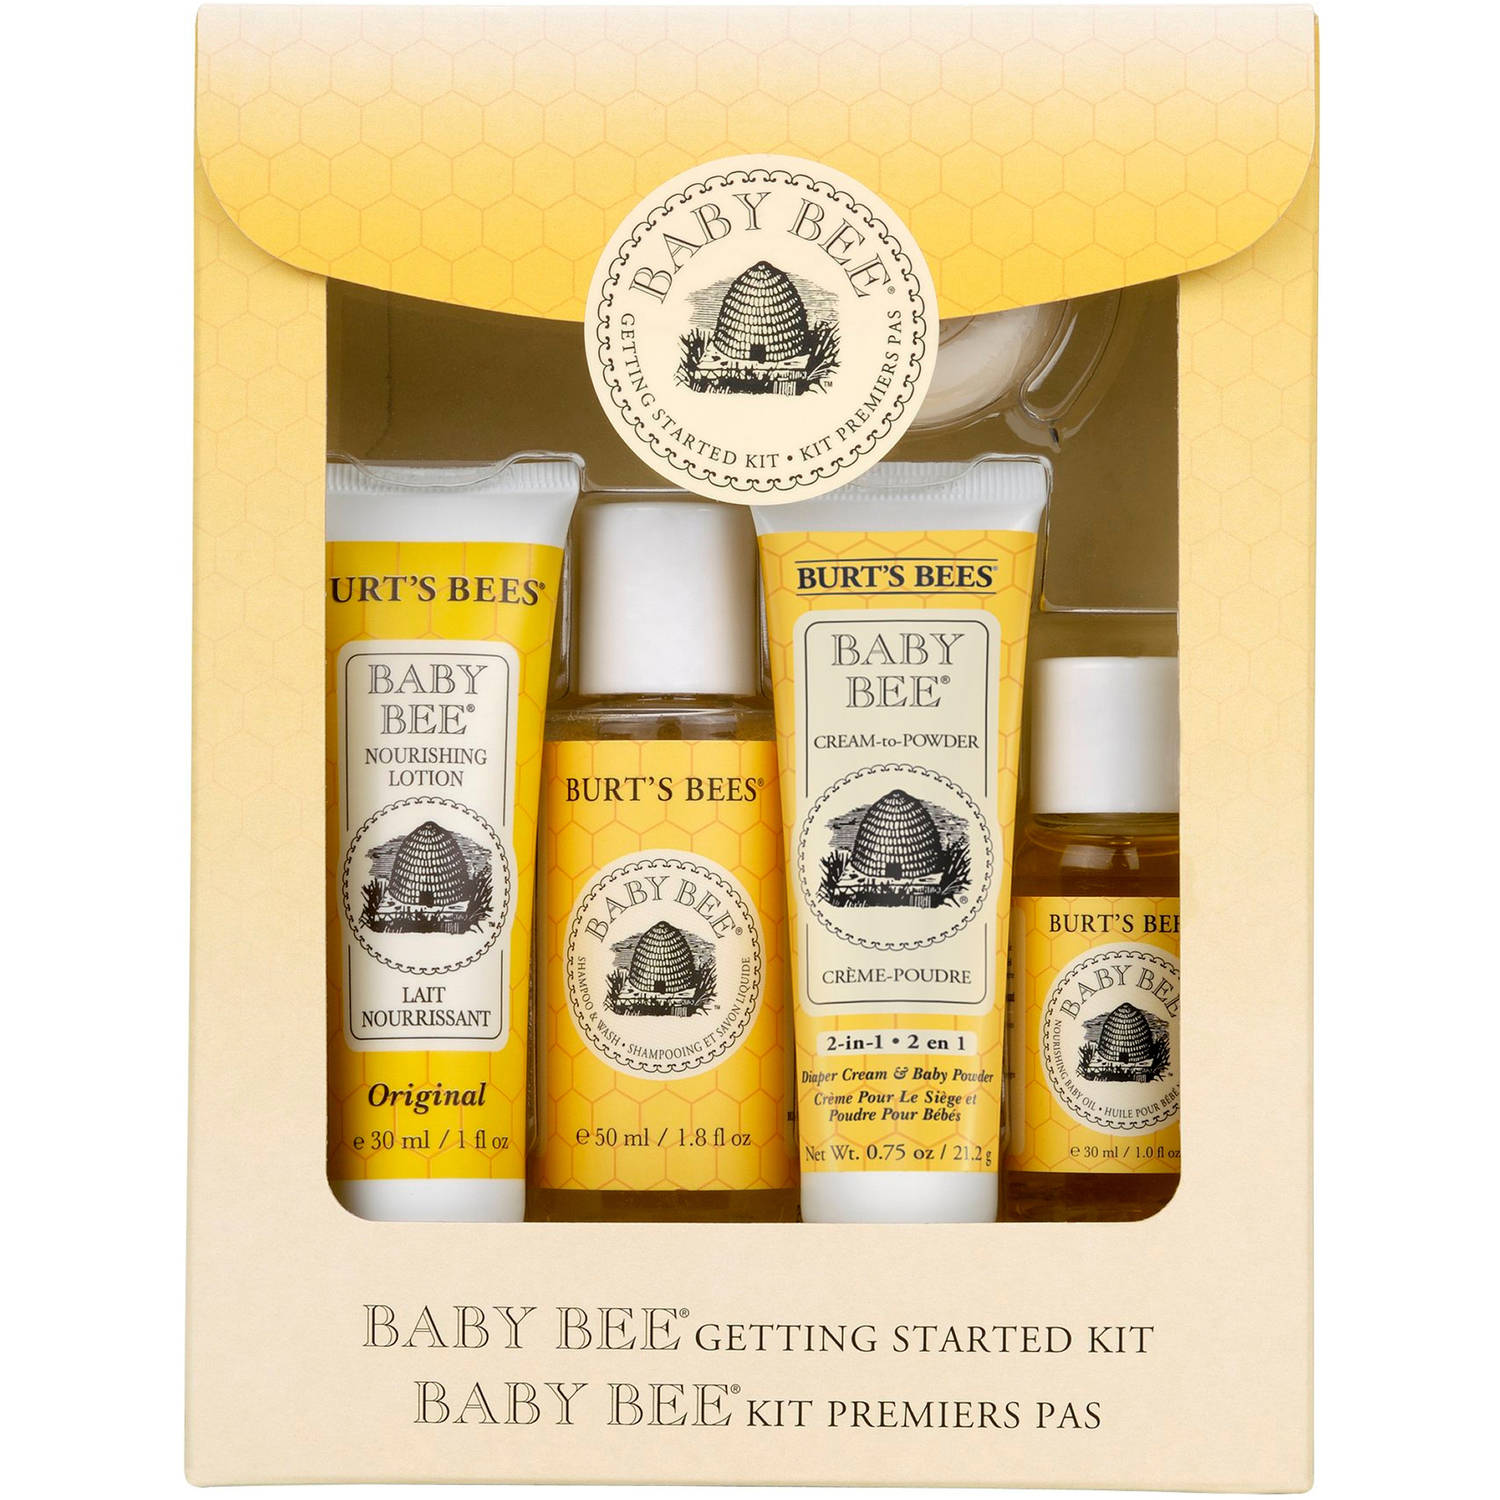 Burt's Bees Baby Bee Getting Started Gift Set